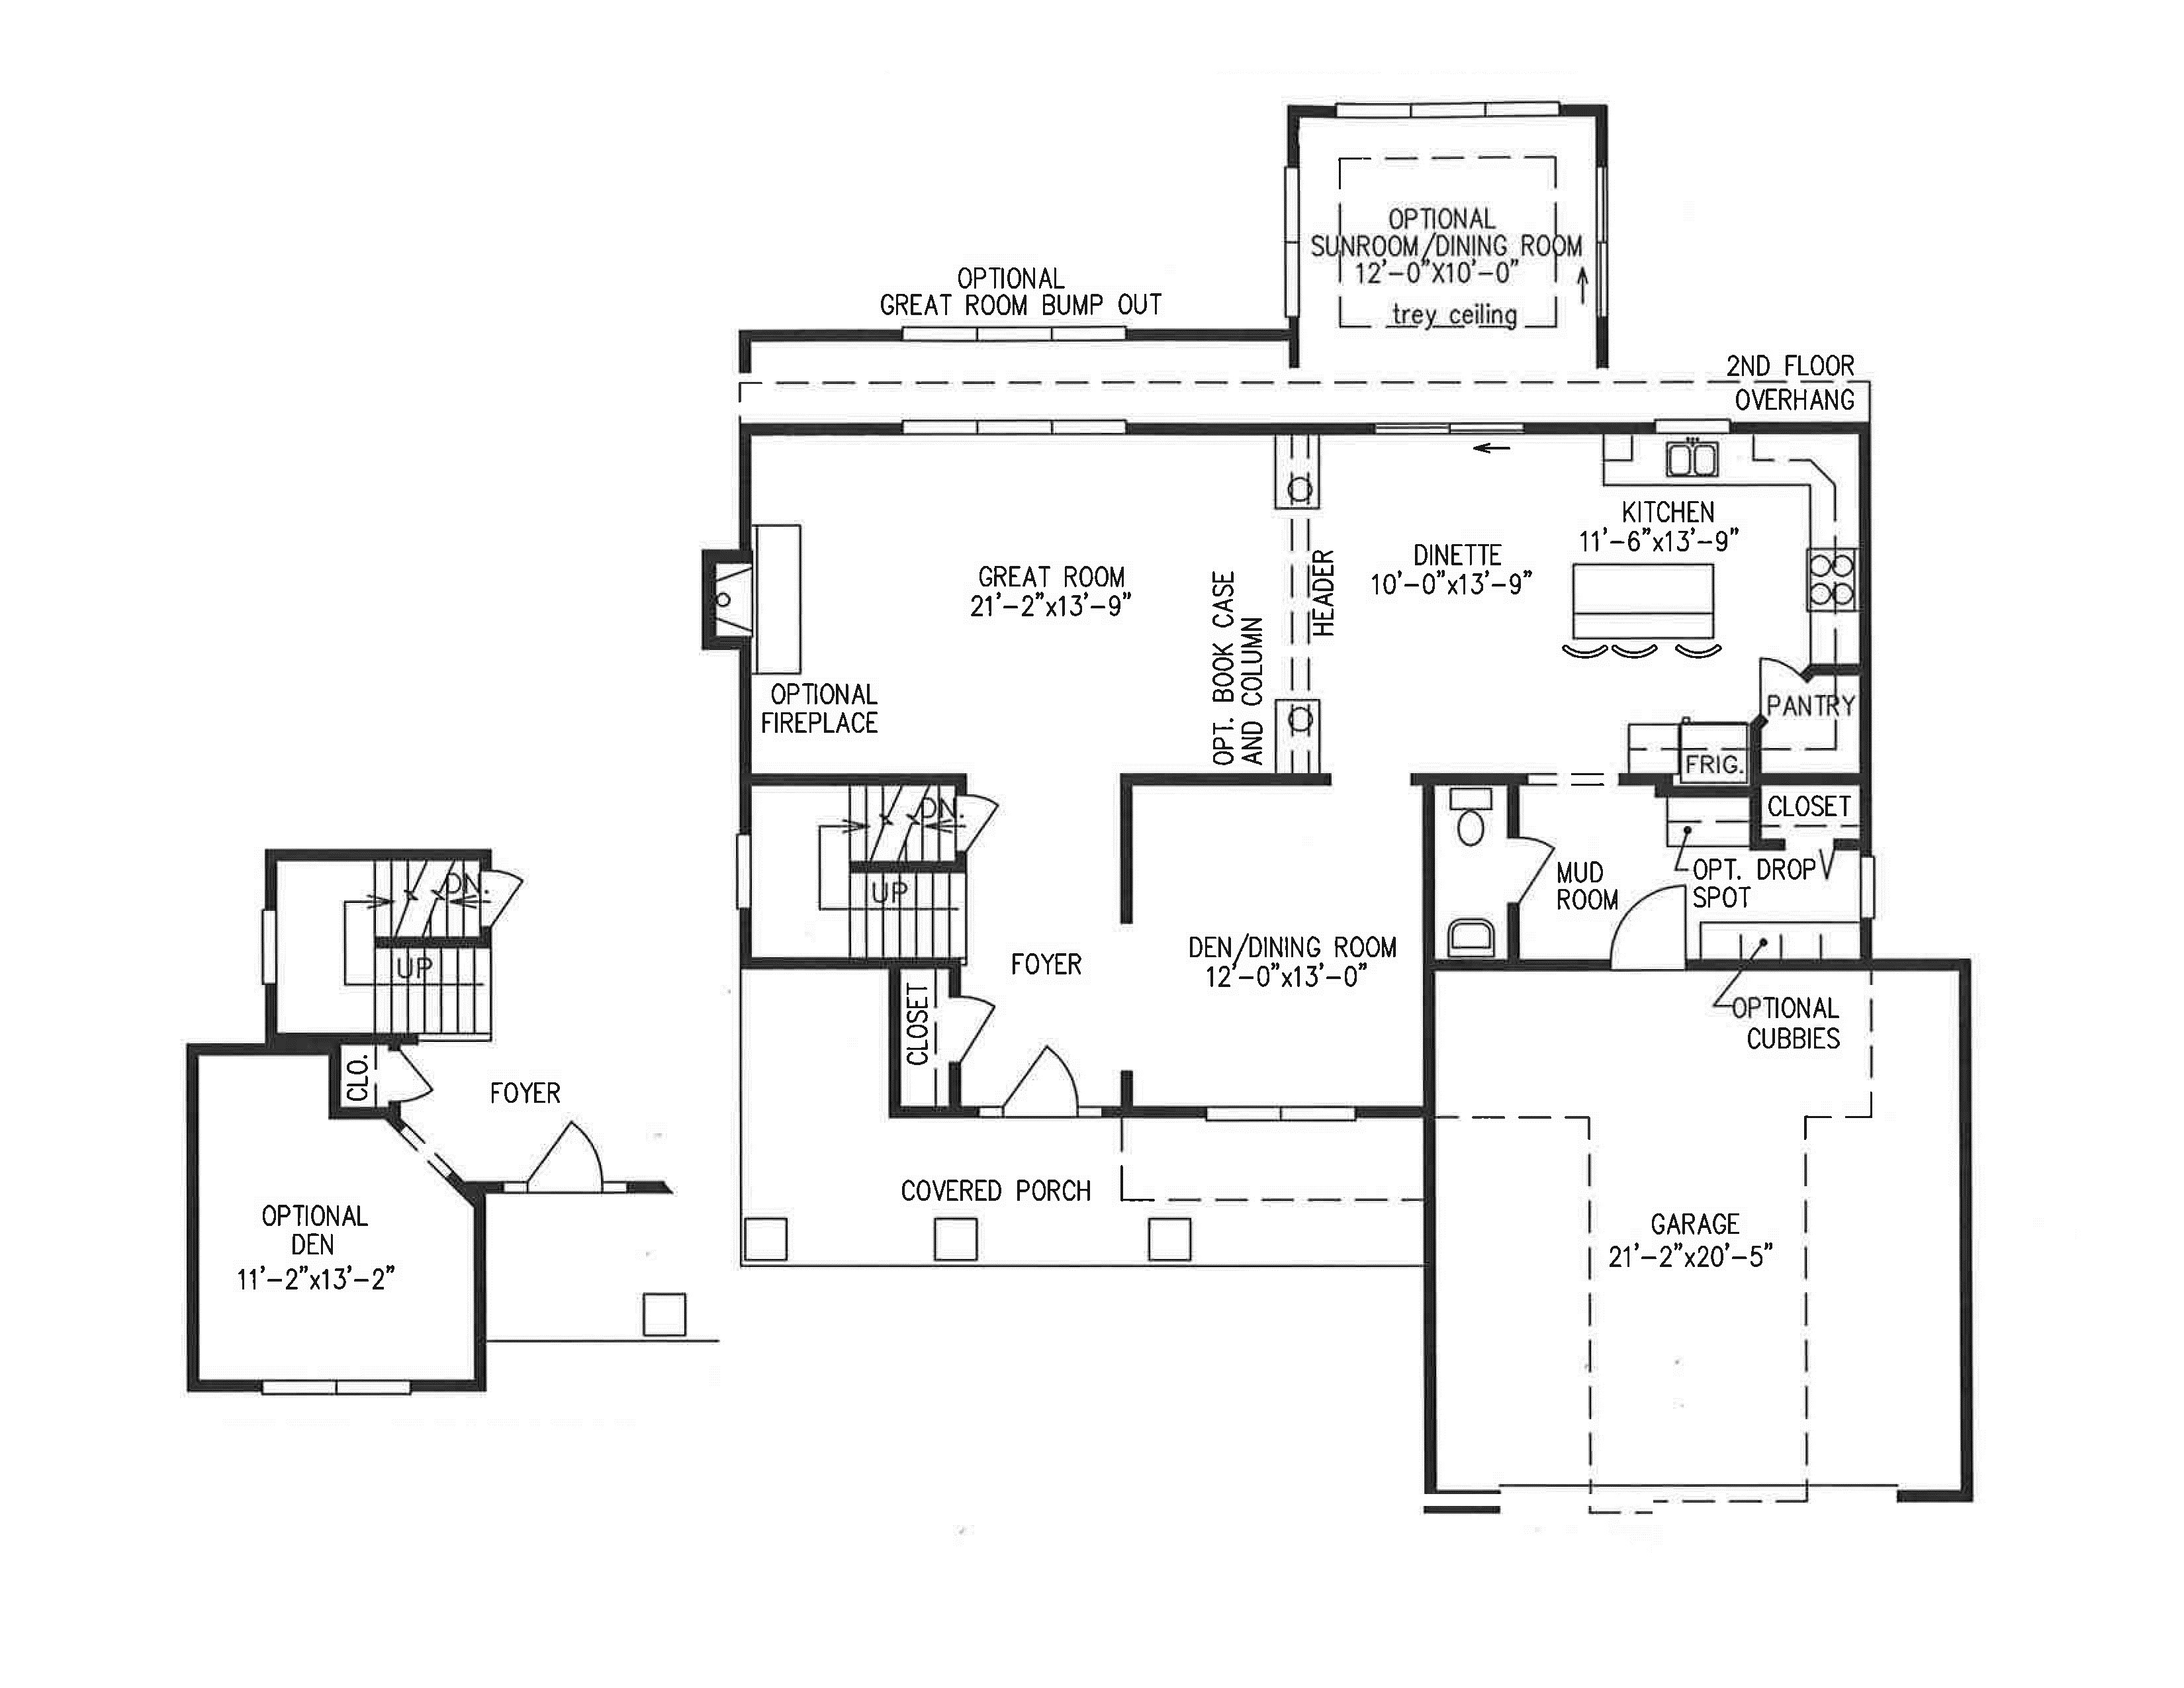 Ruskin 1st floor plan without dimensions alliance homes - 3 bedroom floor plan with dimensions pdf ...